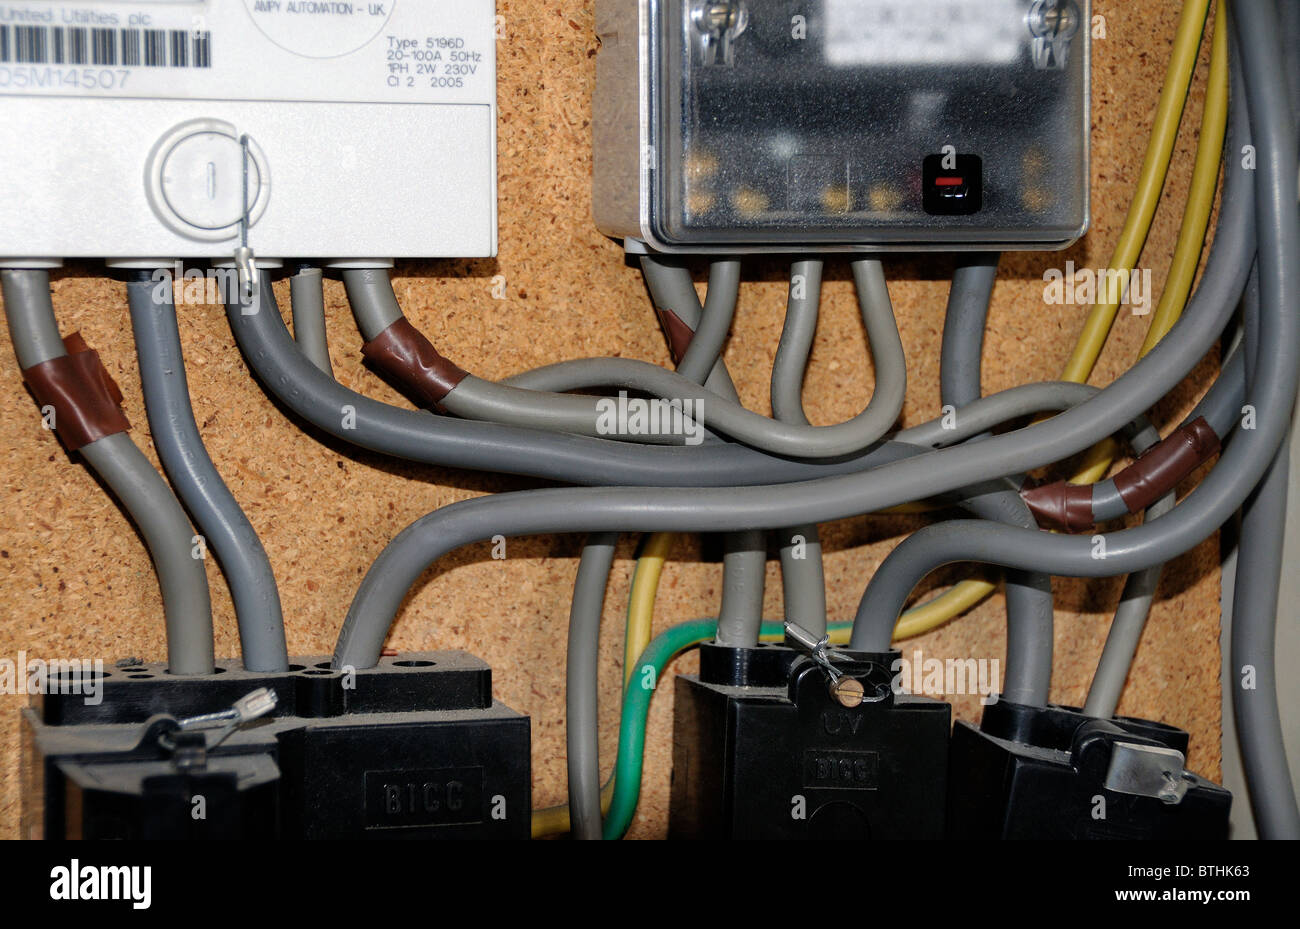 Wiring Electric Meter Diagram Detailed Electrical Panel Detail Of In Domestic Box Stock Photo Residential